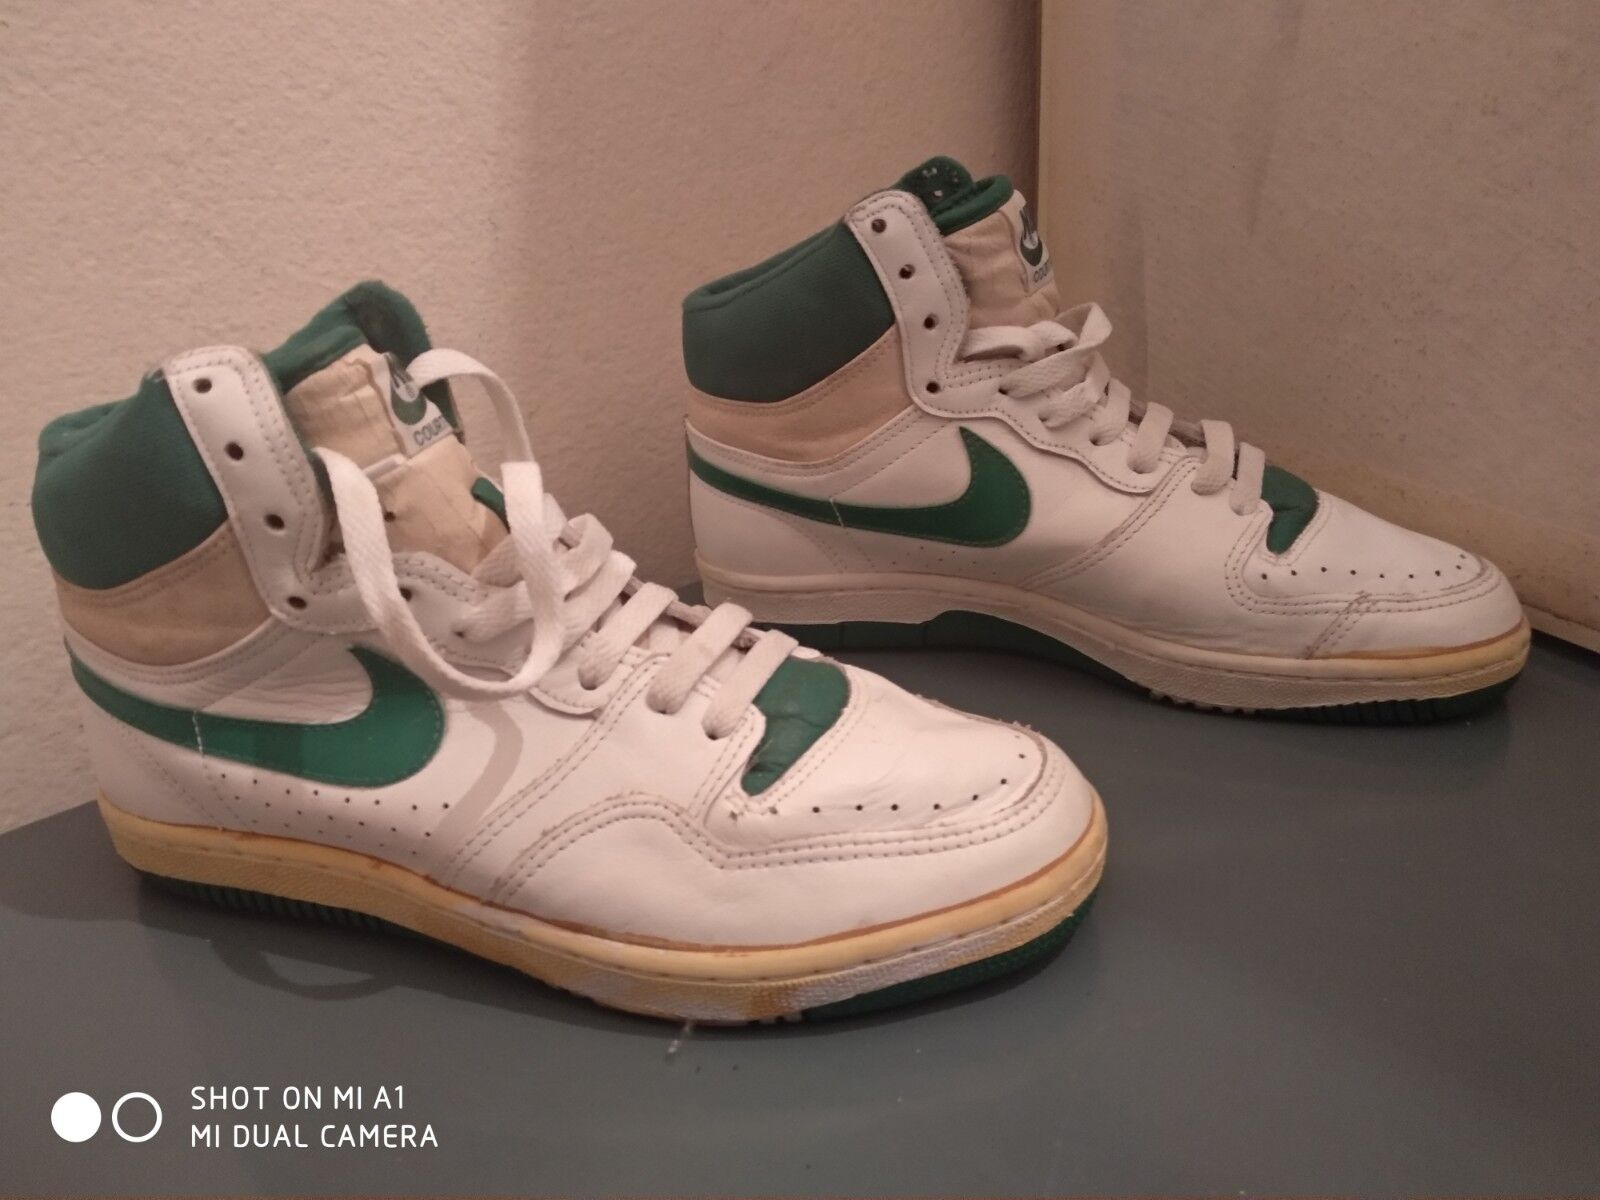 Vintage nike court force 80s   basketball shoes good condition size us 8